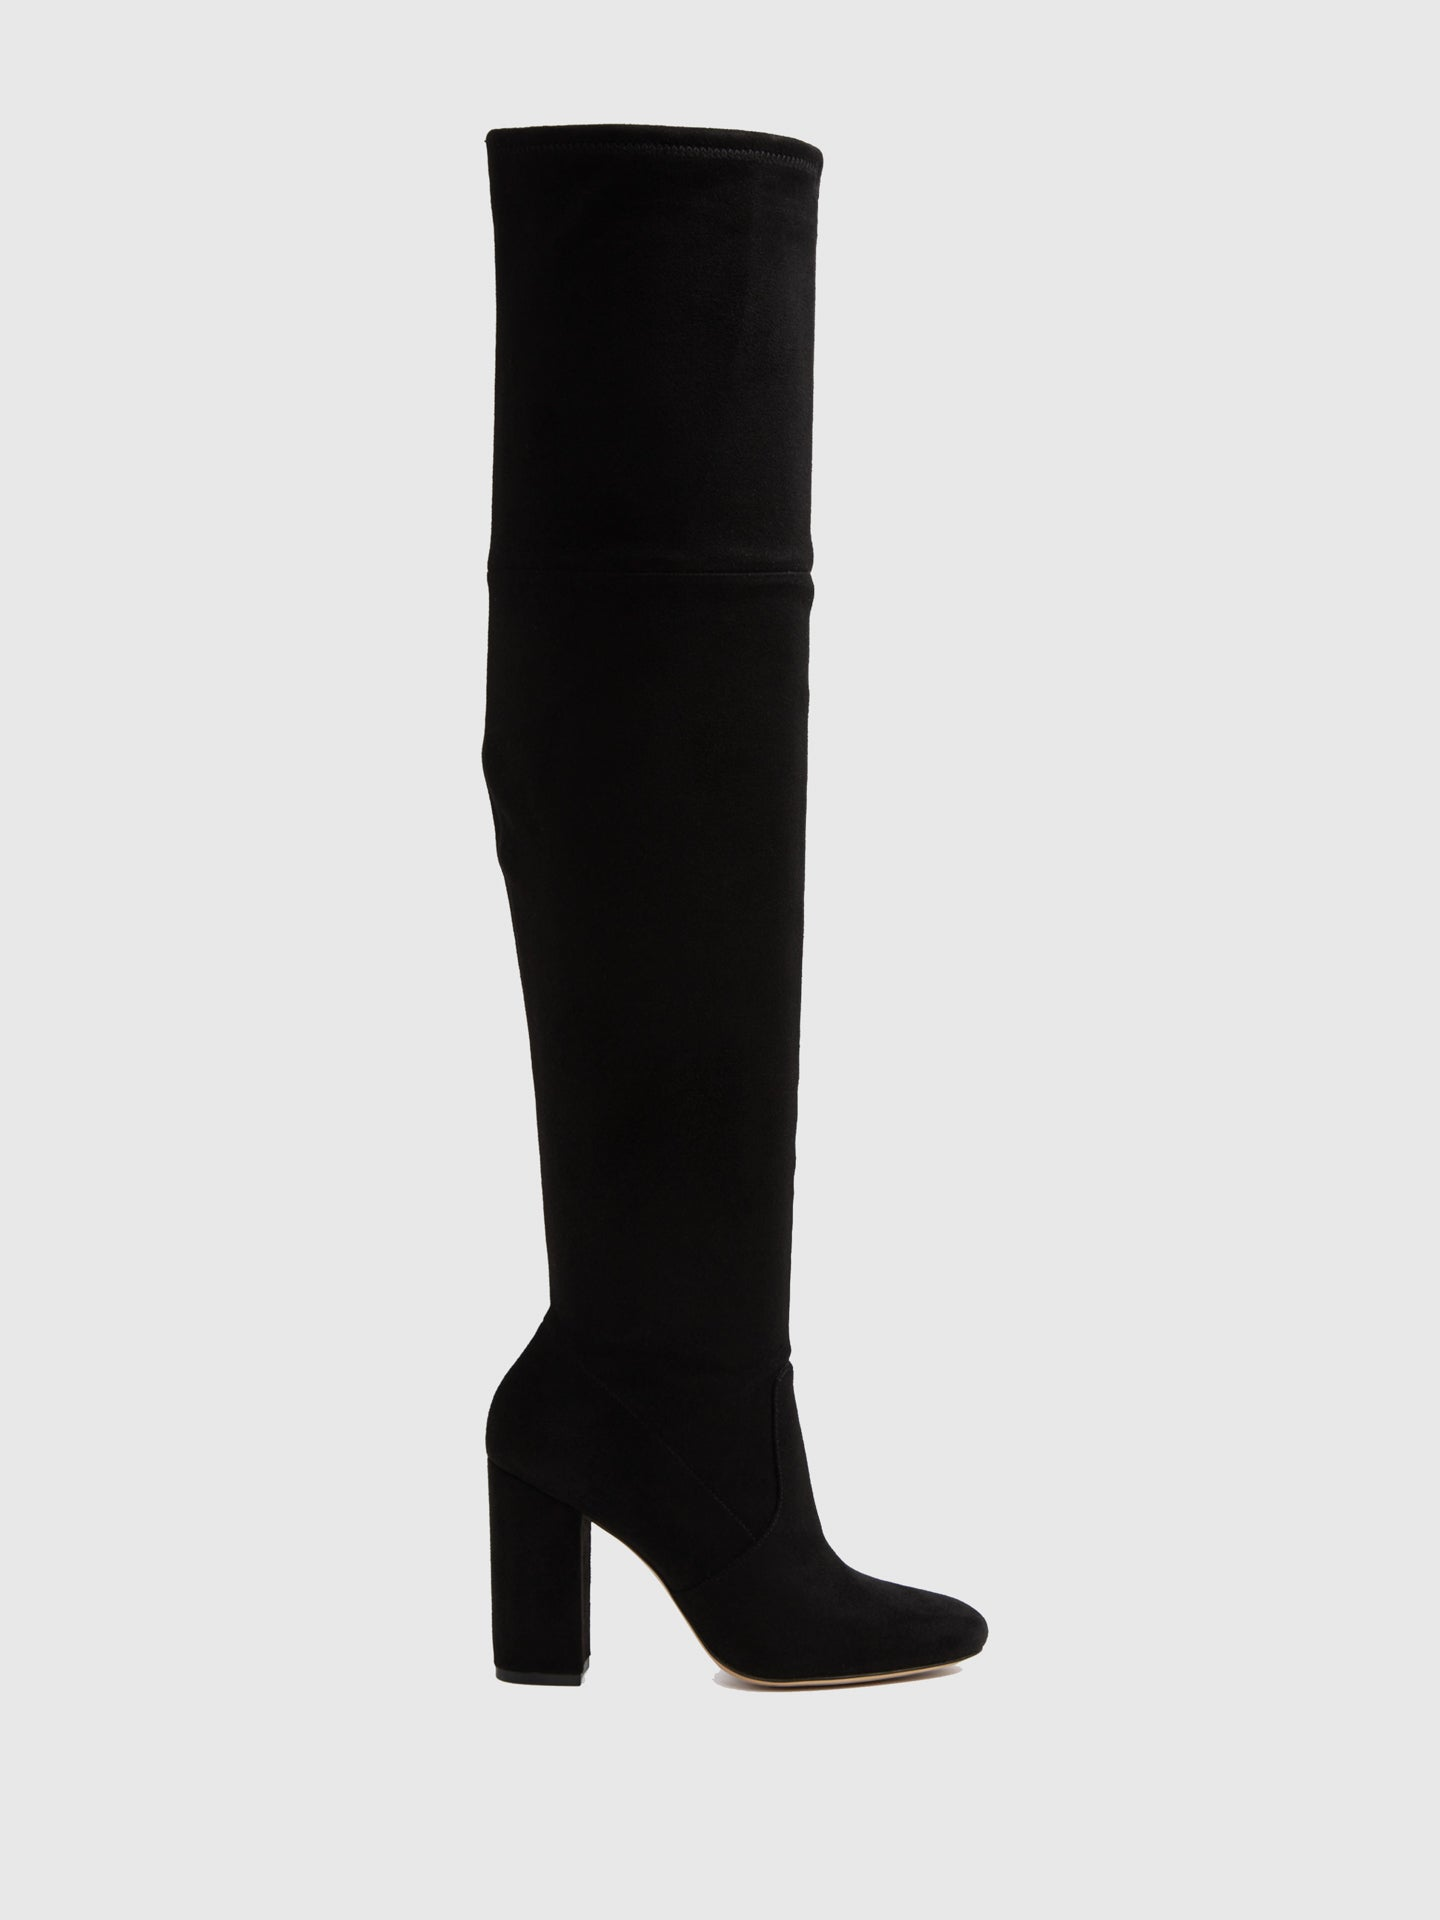 Aldo Black Suede Over the Knee